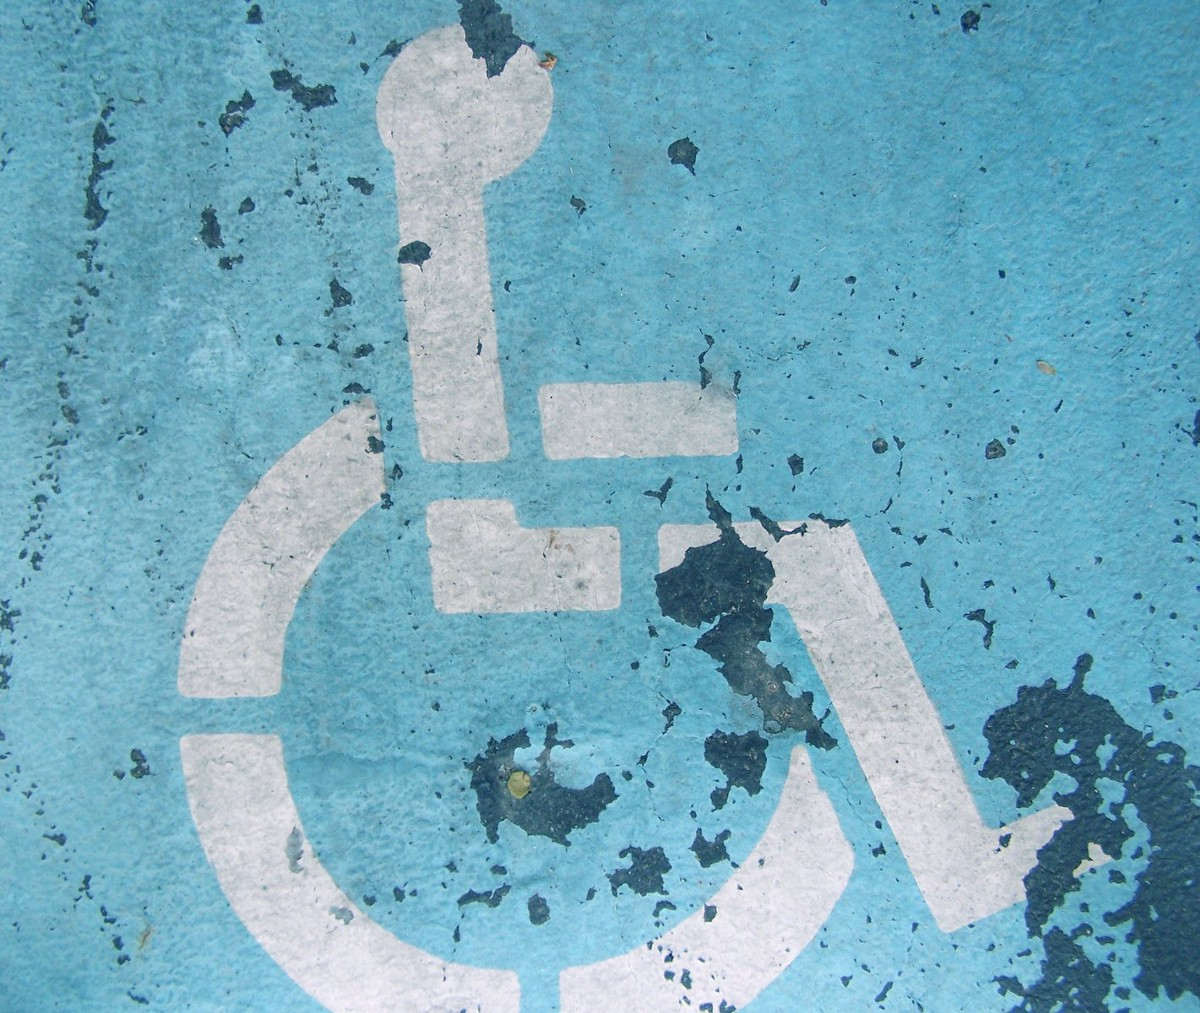 How every issue is a disability justice issue marion medium image description the international symbol of access appears in cracked and fading paint freeimages biocorpaavc